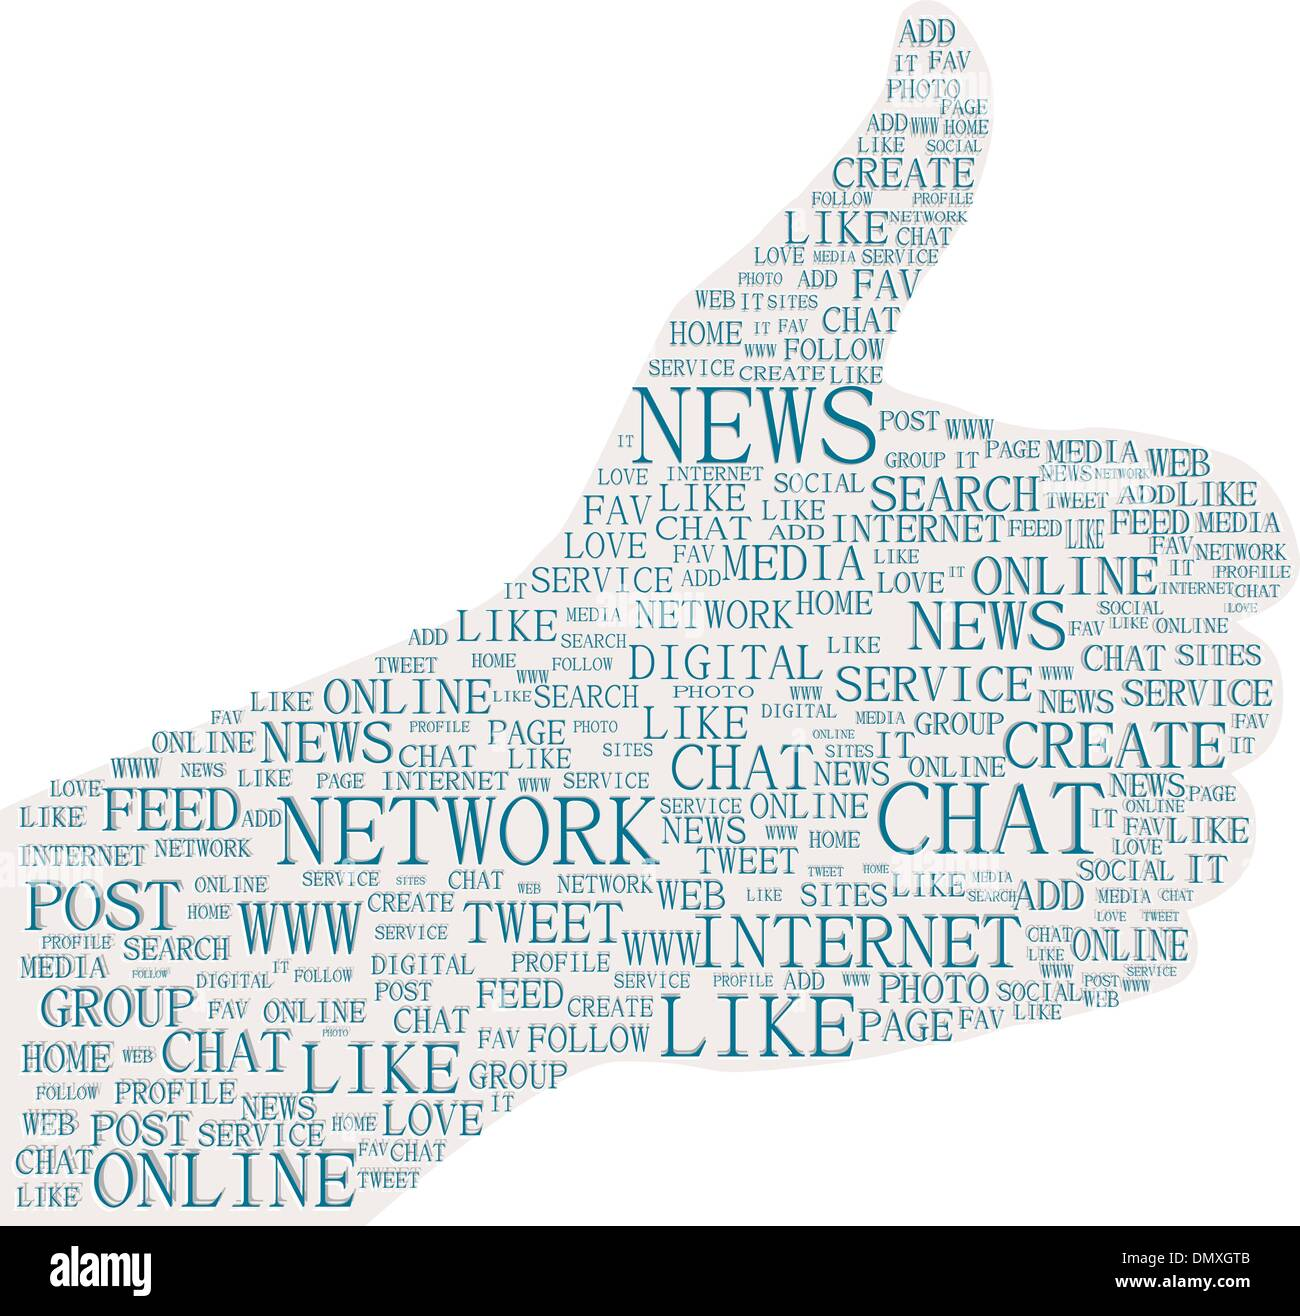 Social Media Networking Style Like Dislike Thumbs up down Rubber Stamps